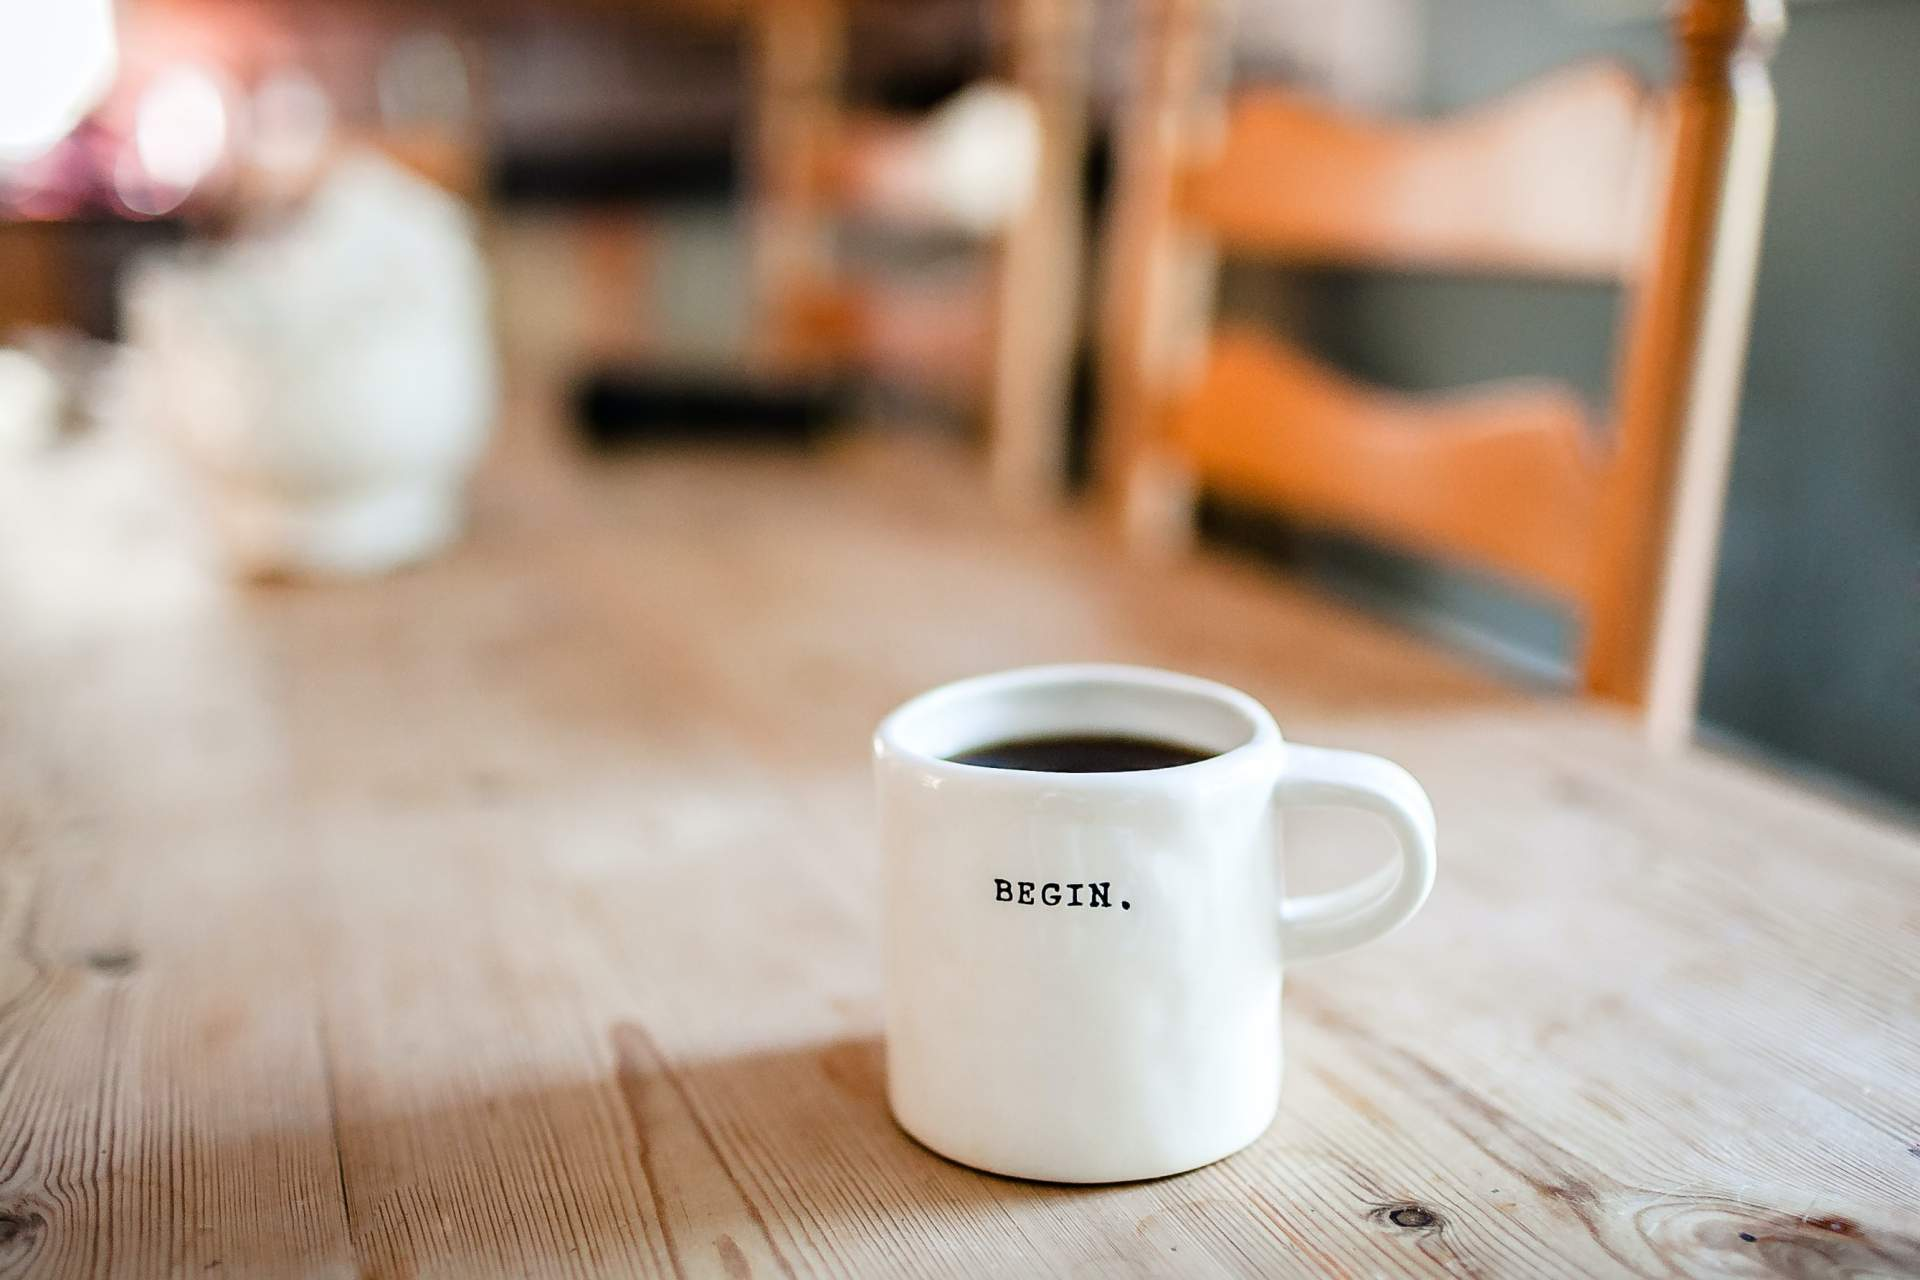 coffee cup that says Begin